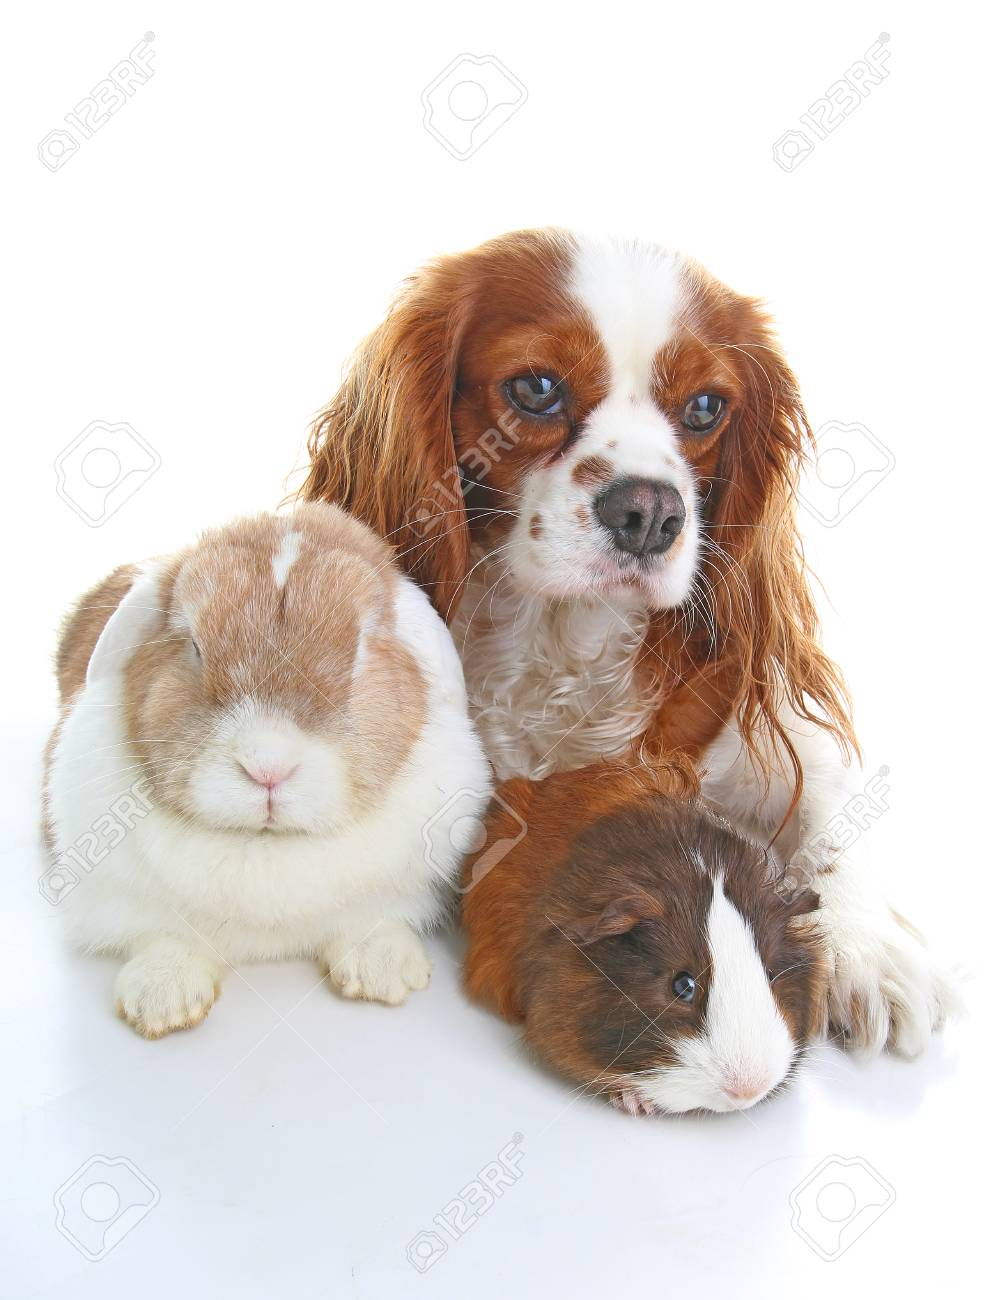 Image of: Deadly Animals Together Real Pet Friends Rabbit Dog Guinea Pig Animal Friendship Pets Loves 123rfcom Animals Together Real Pet Friends Rabbit Dog Guinea Pig Animal